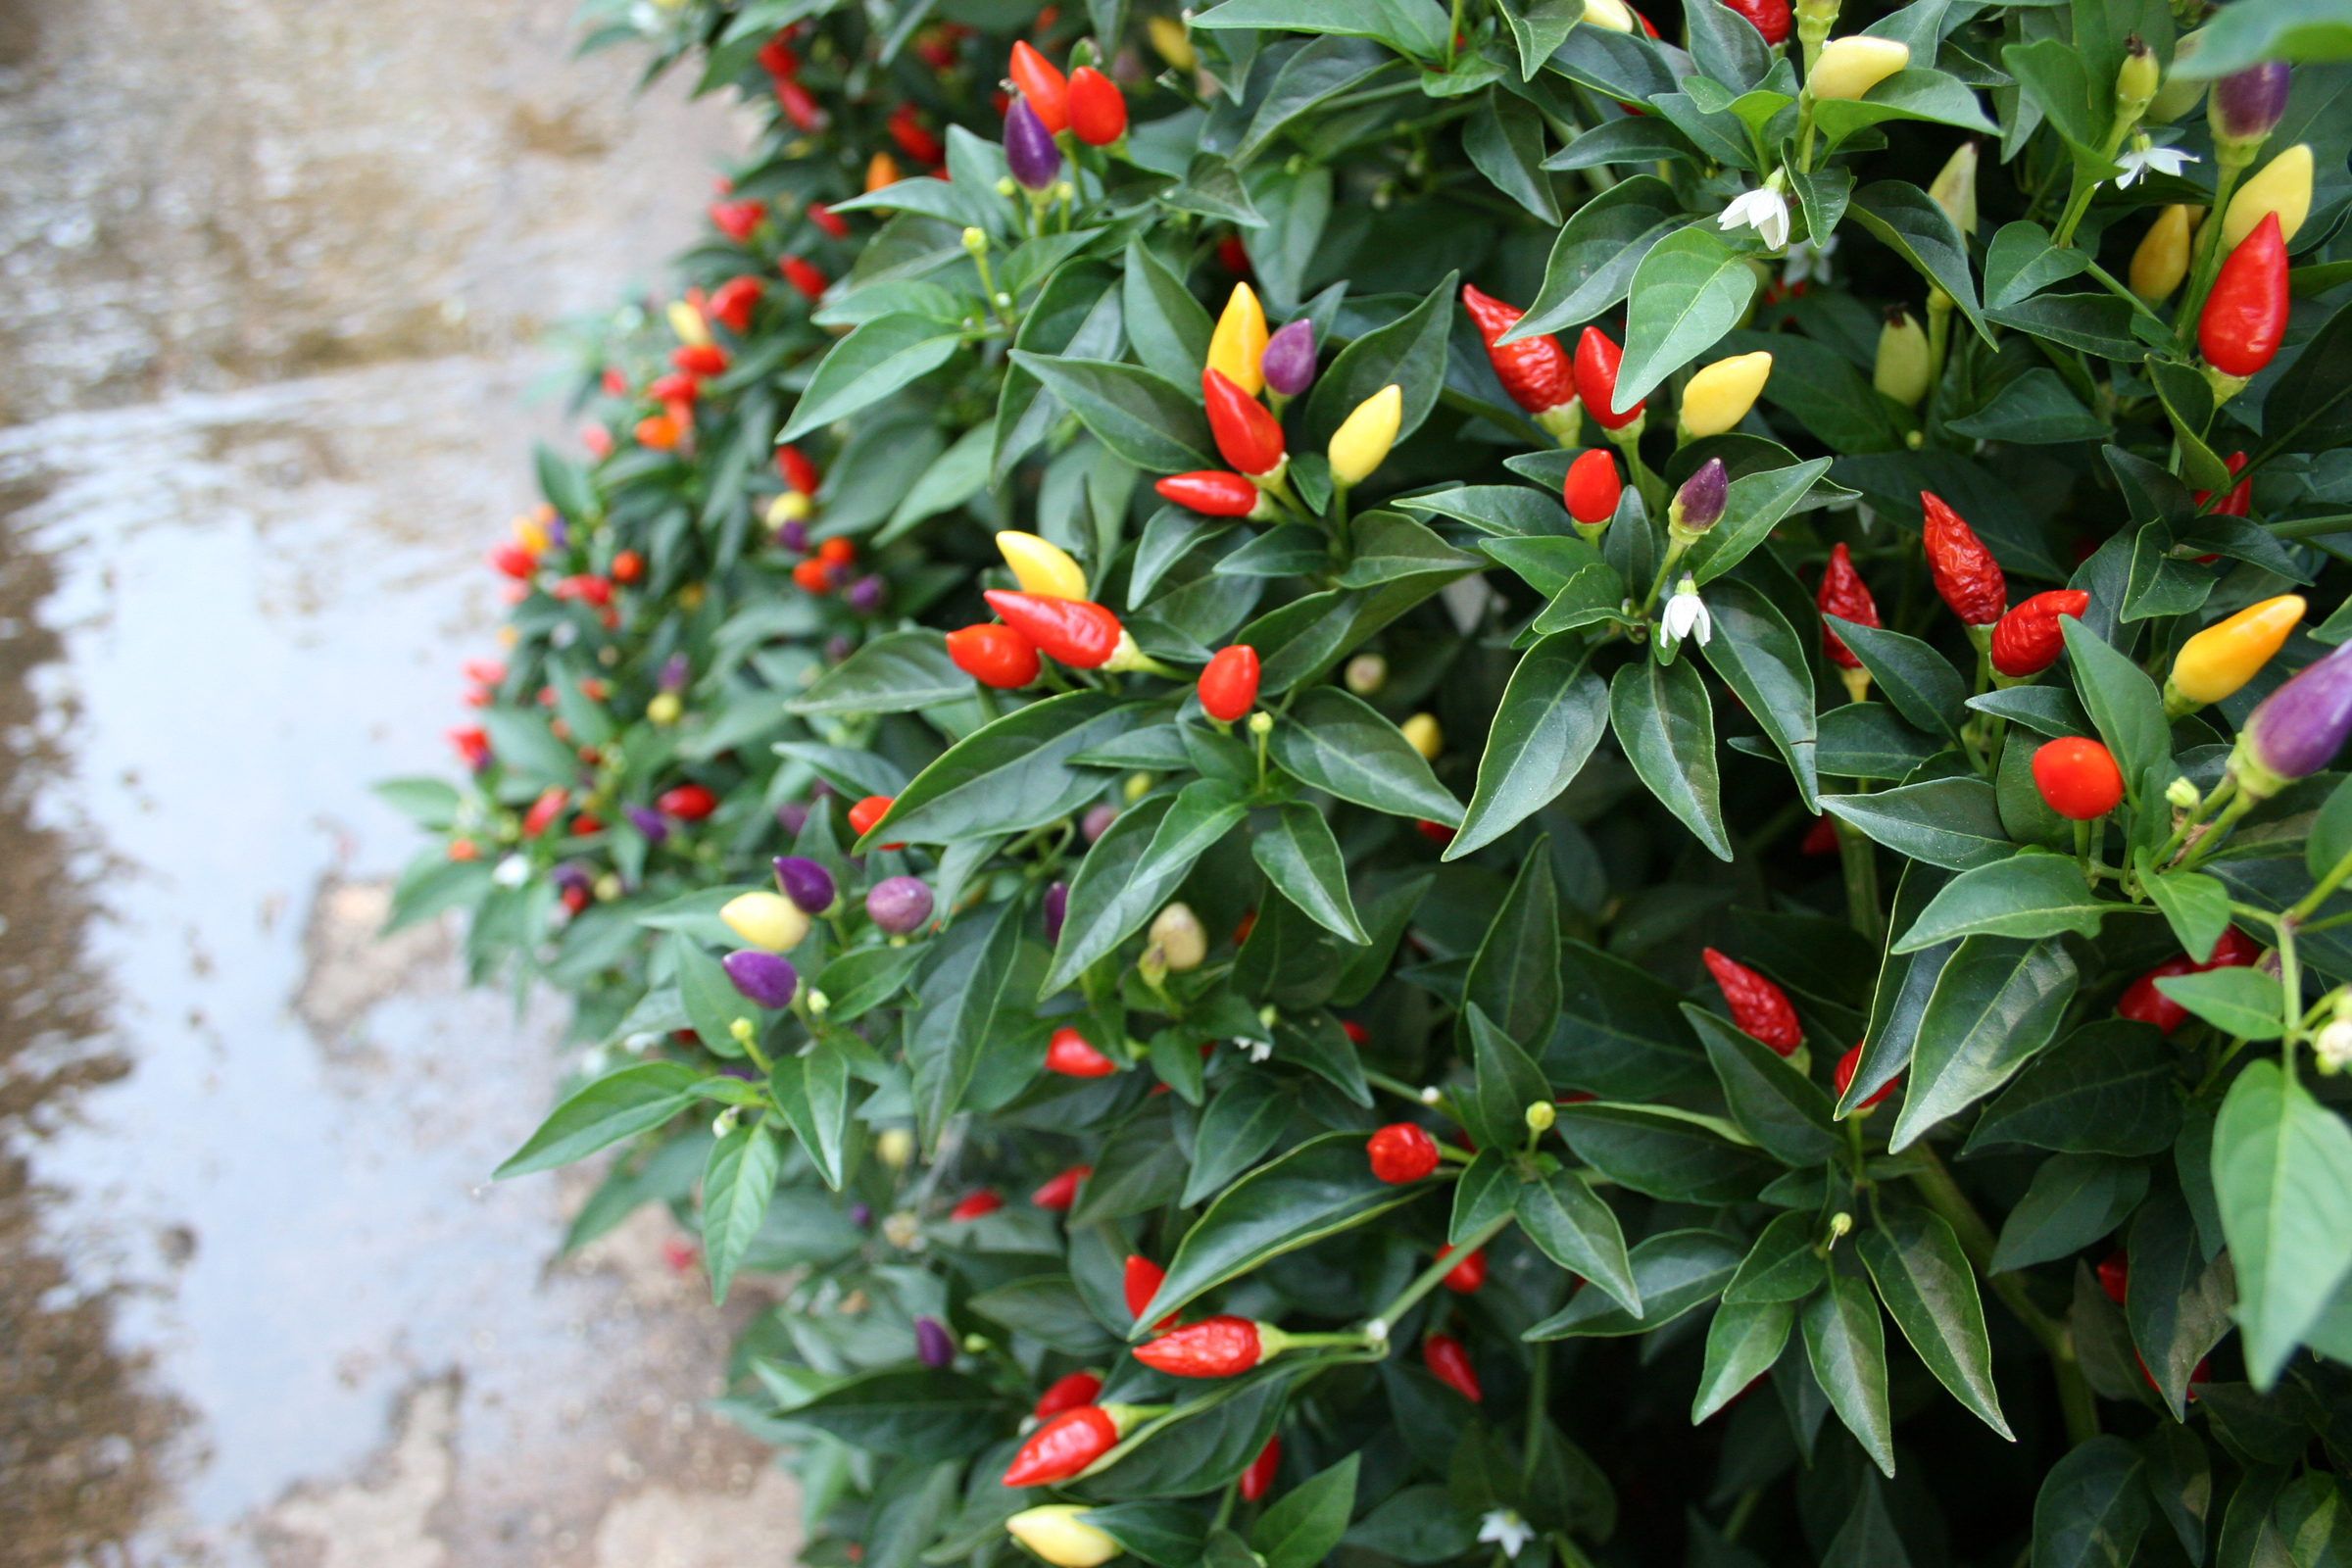 Ornamental peppers grow in many colors - from white to purple - in the UGA Horticulture Trial Gardens in Athens, Ga.